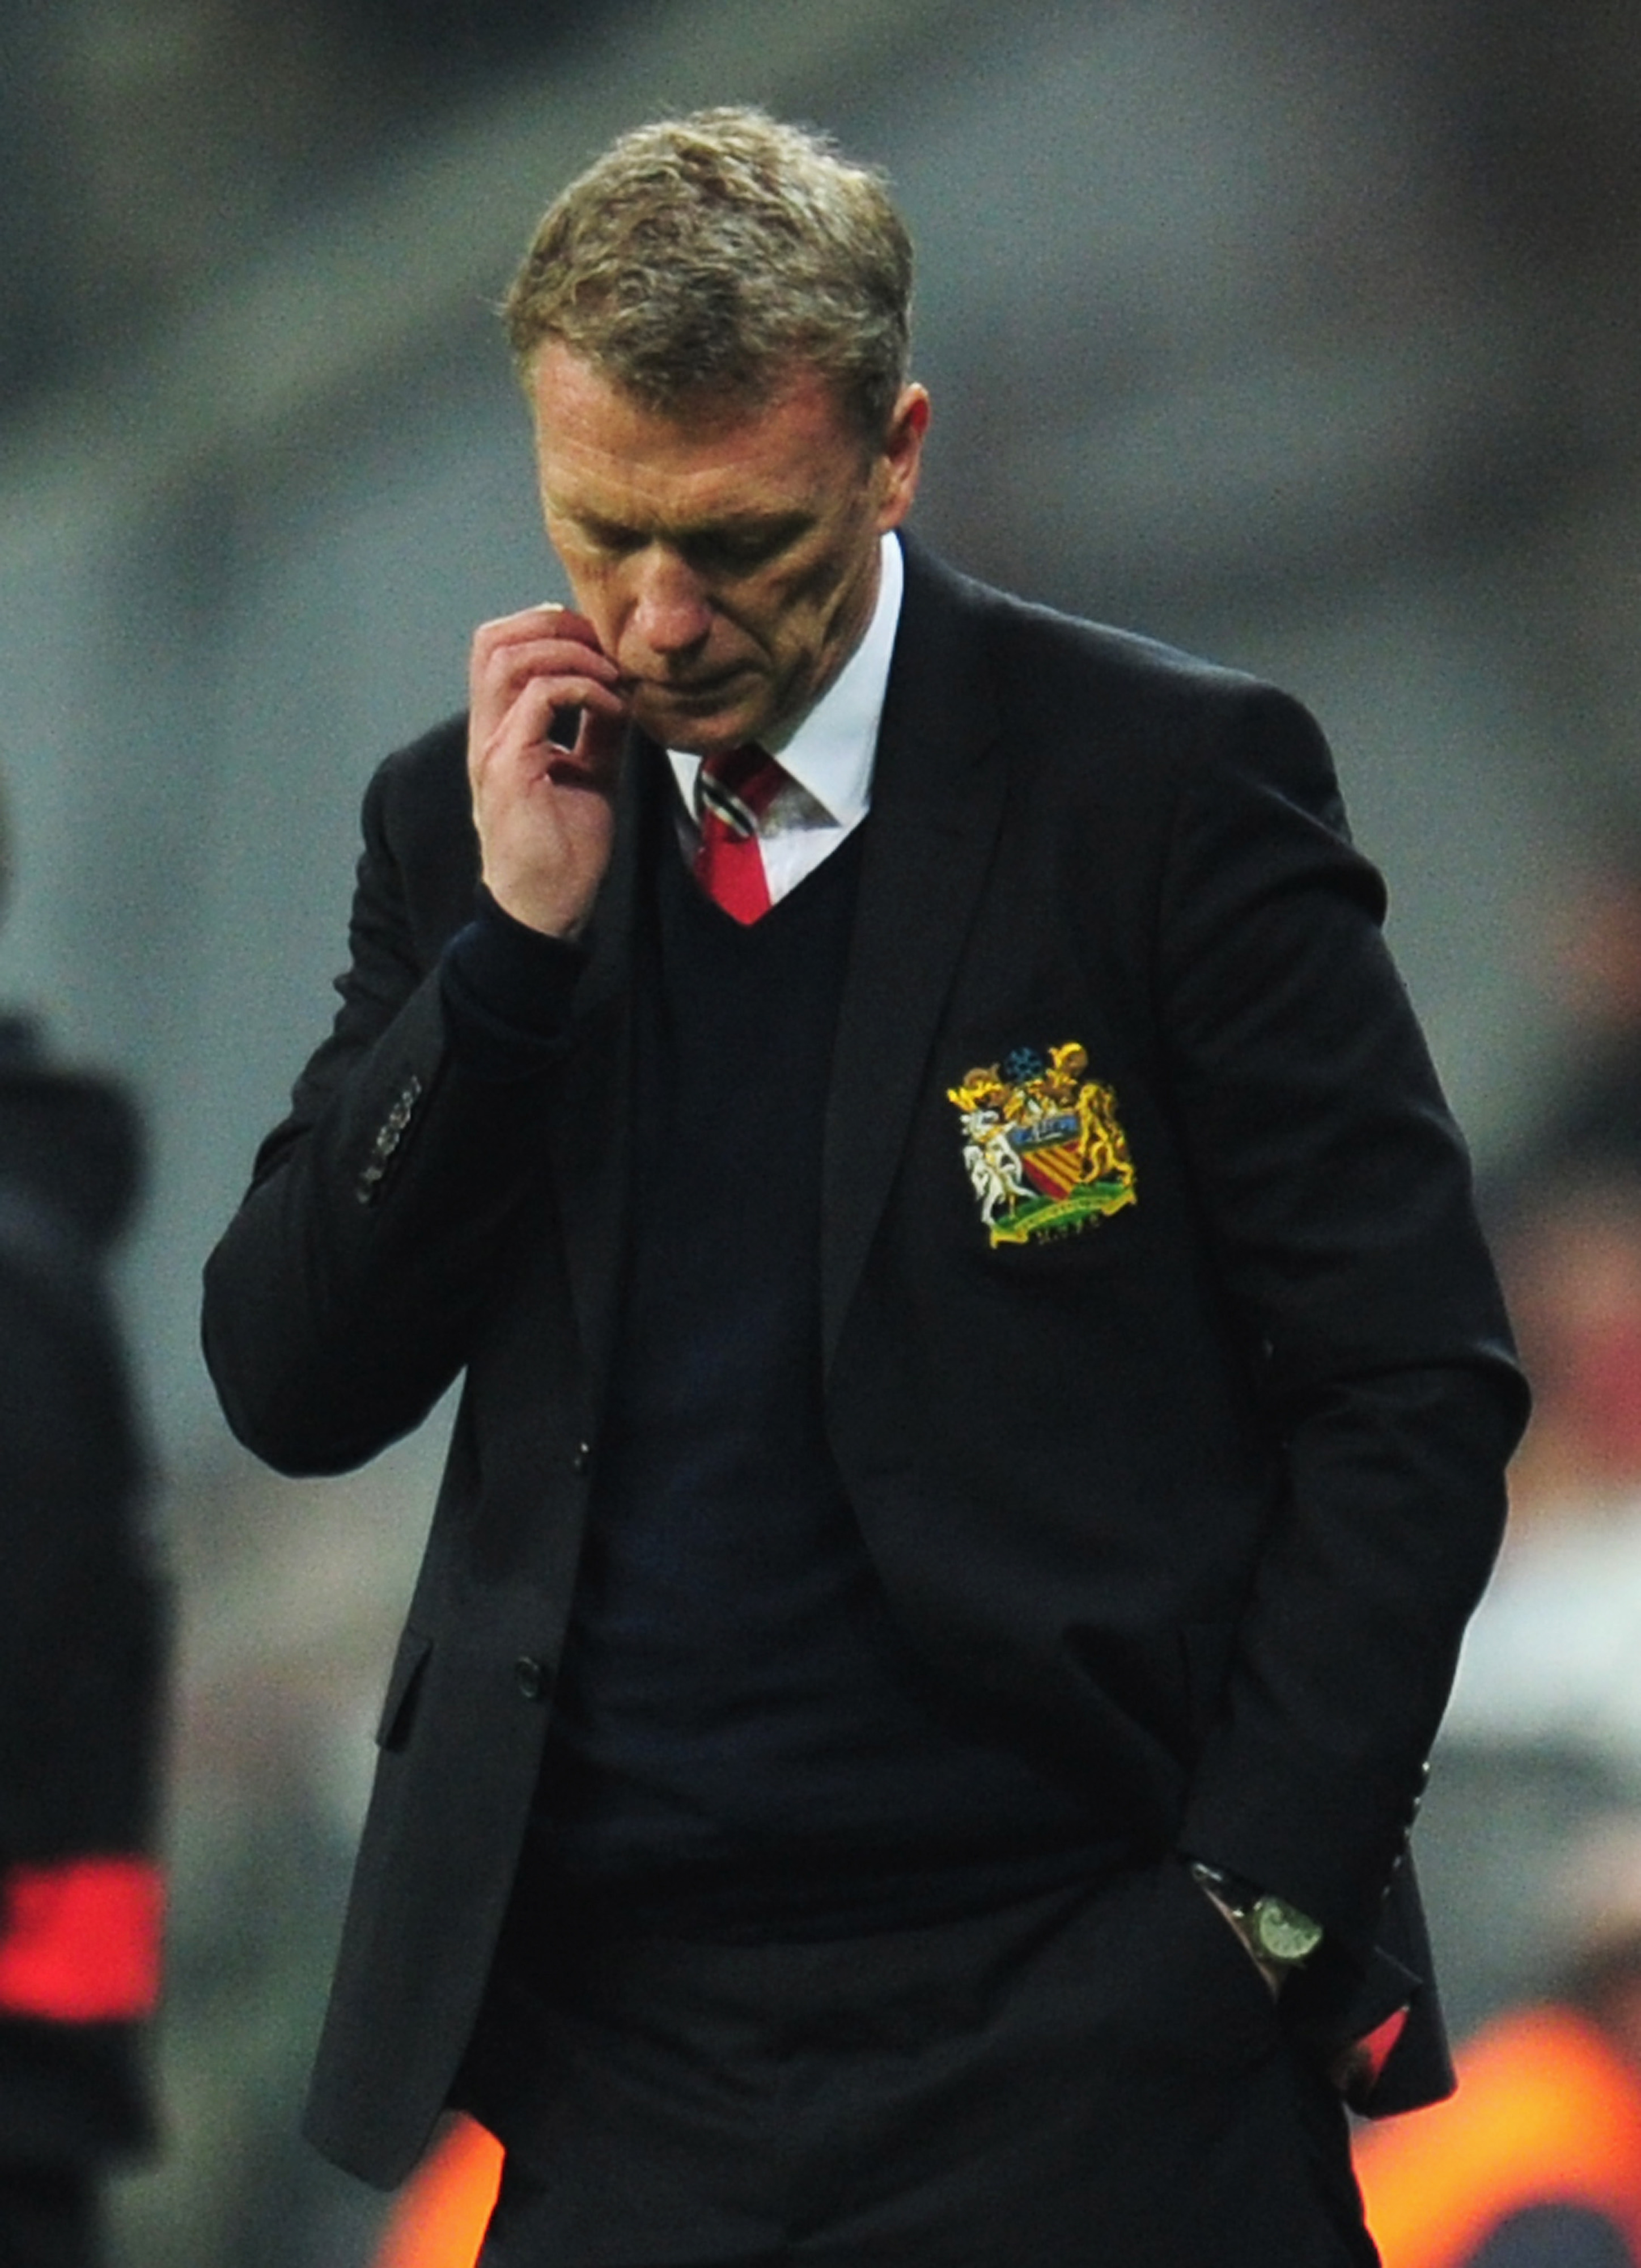 David Moyes to be sacked by Manchester United